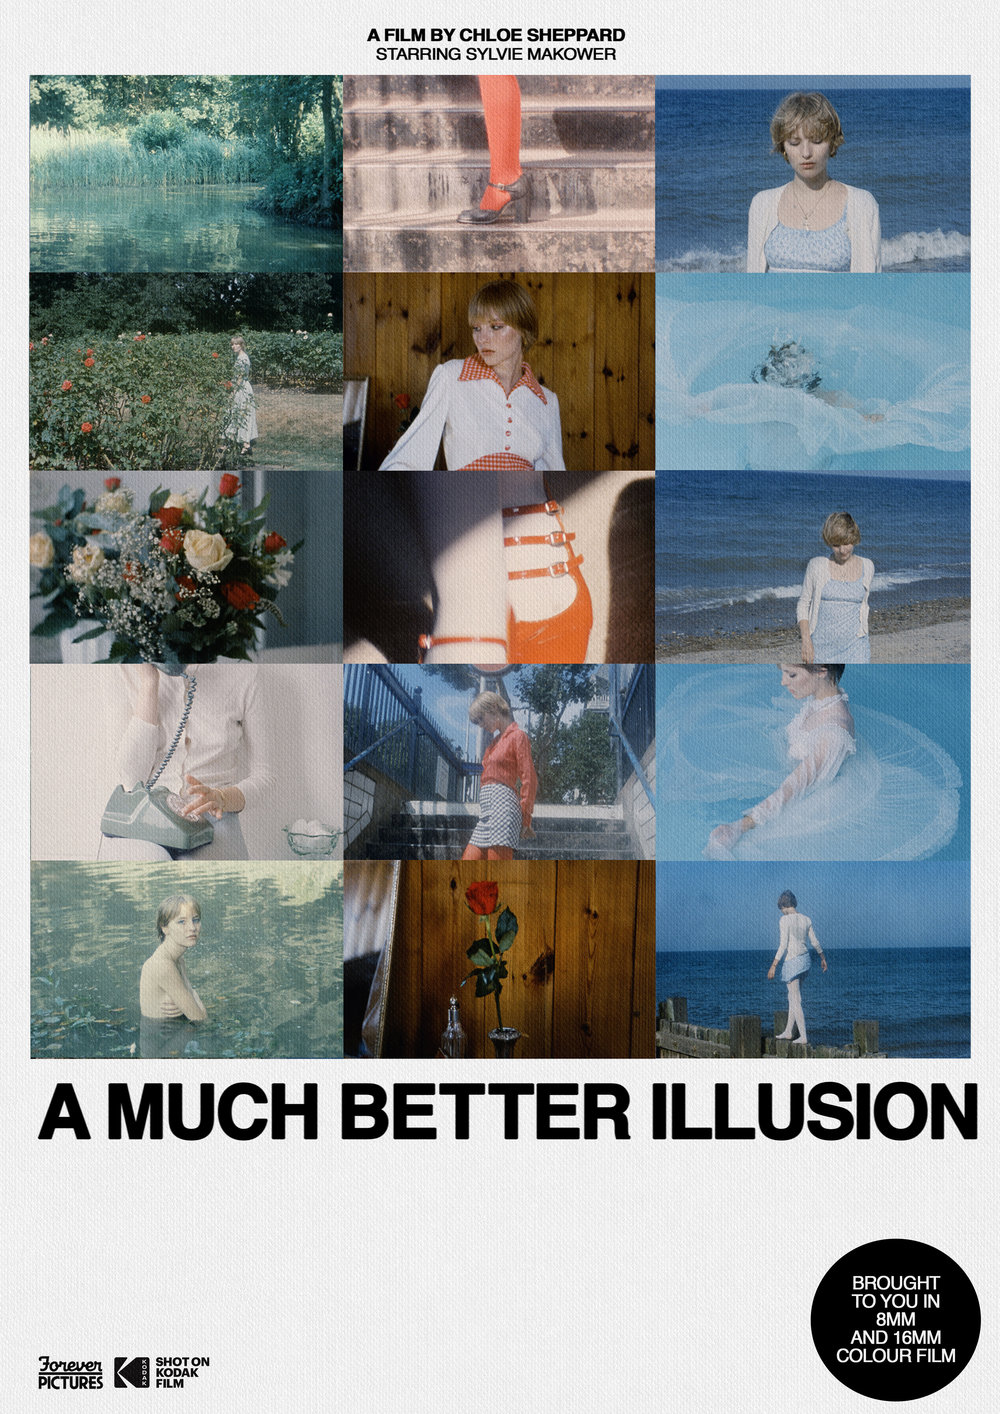 Chloe Sheppard - 'A Much Better Illusion'